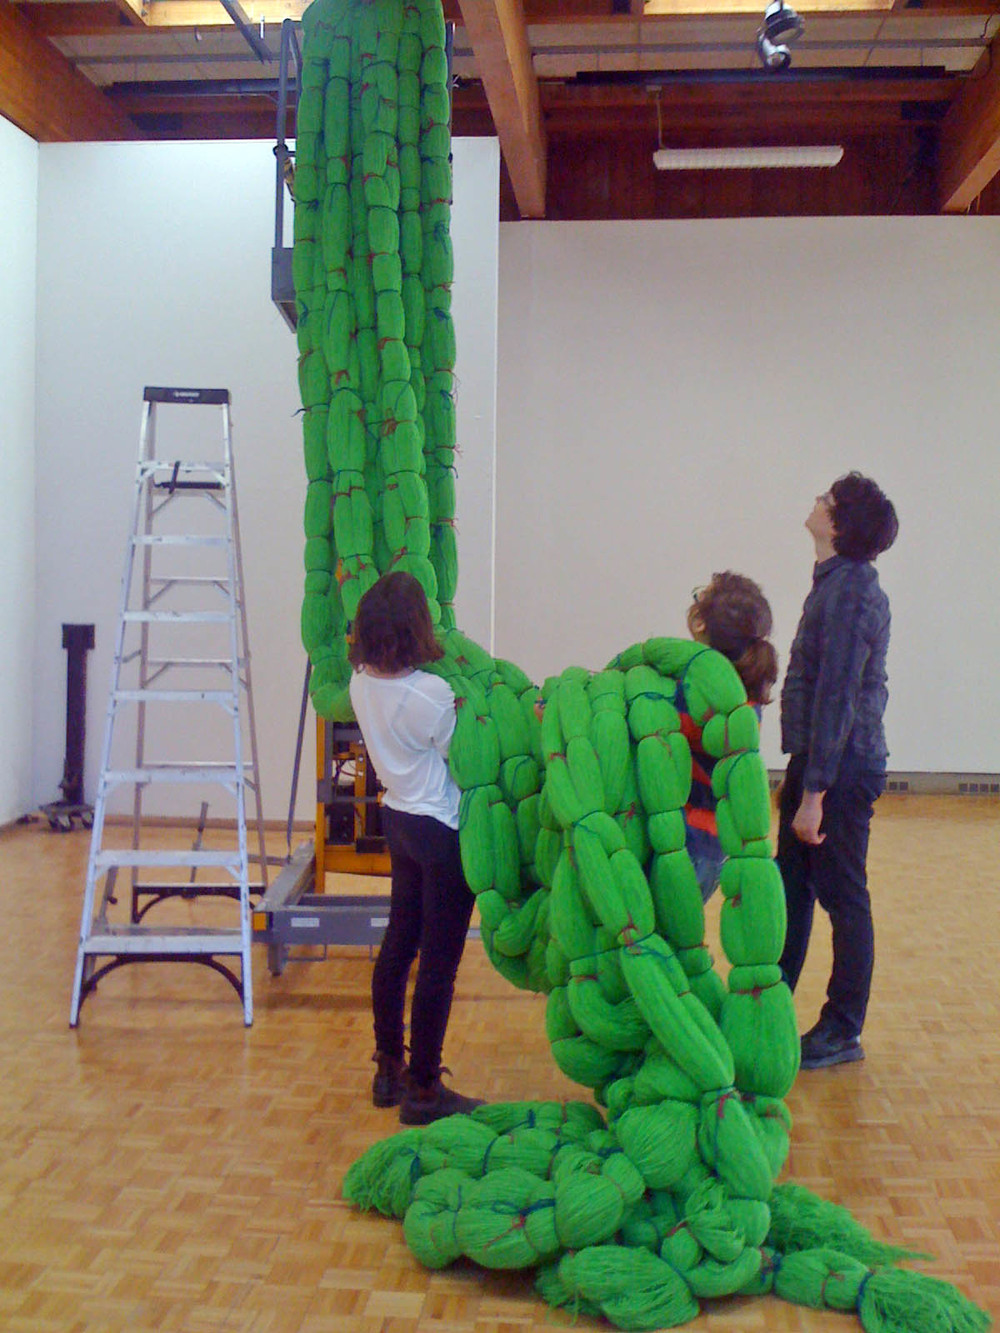 A Work in Progress: TRIM (Installation at Usdan Gallery, Bennington College), 2010, Acrylic yarn, 14' x 40' x 80' (Work in progress)